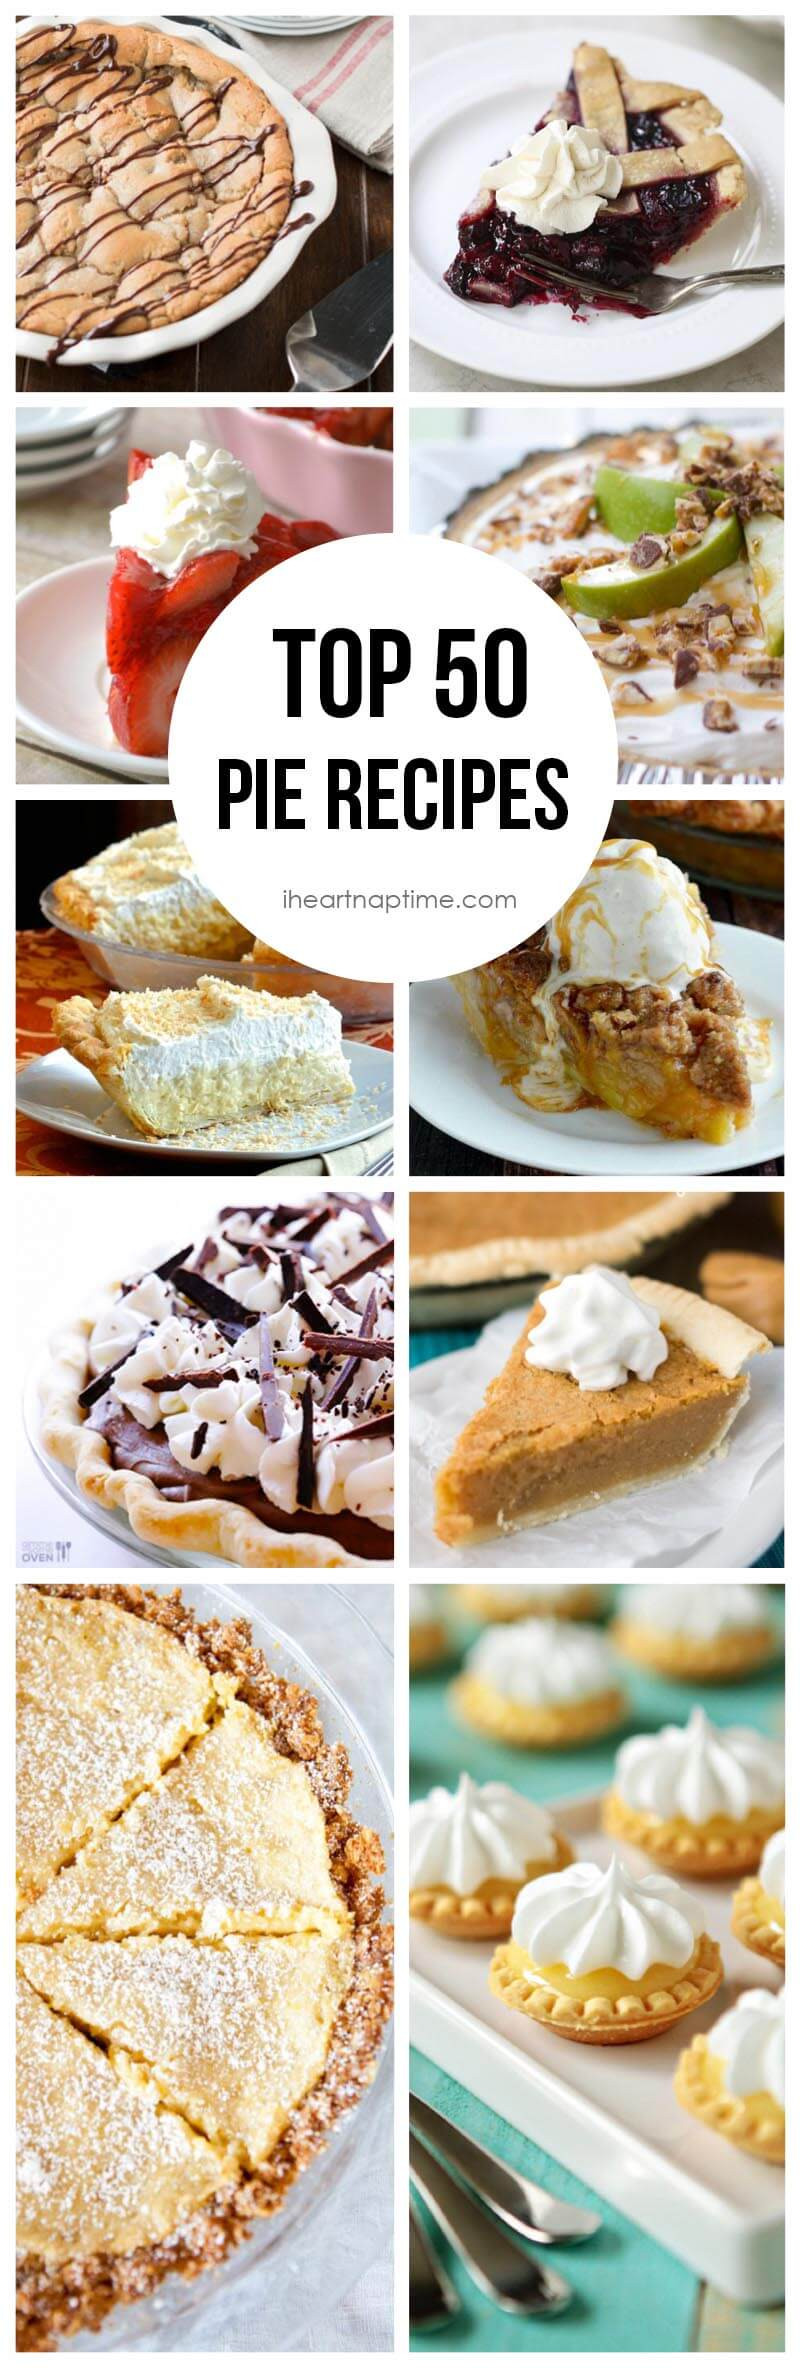 Pie Recipes For Thanksgiving  Top 50 Pie Recipes I Heart Nap Time